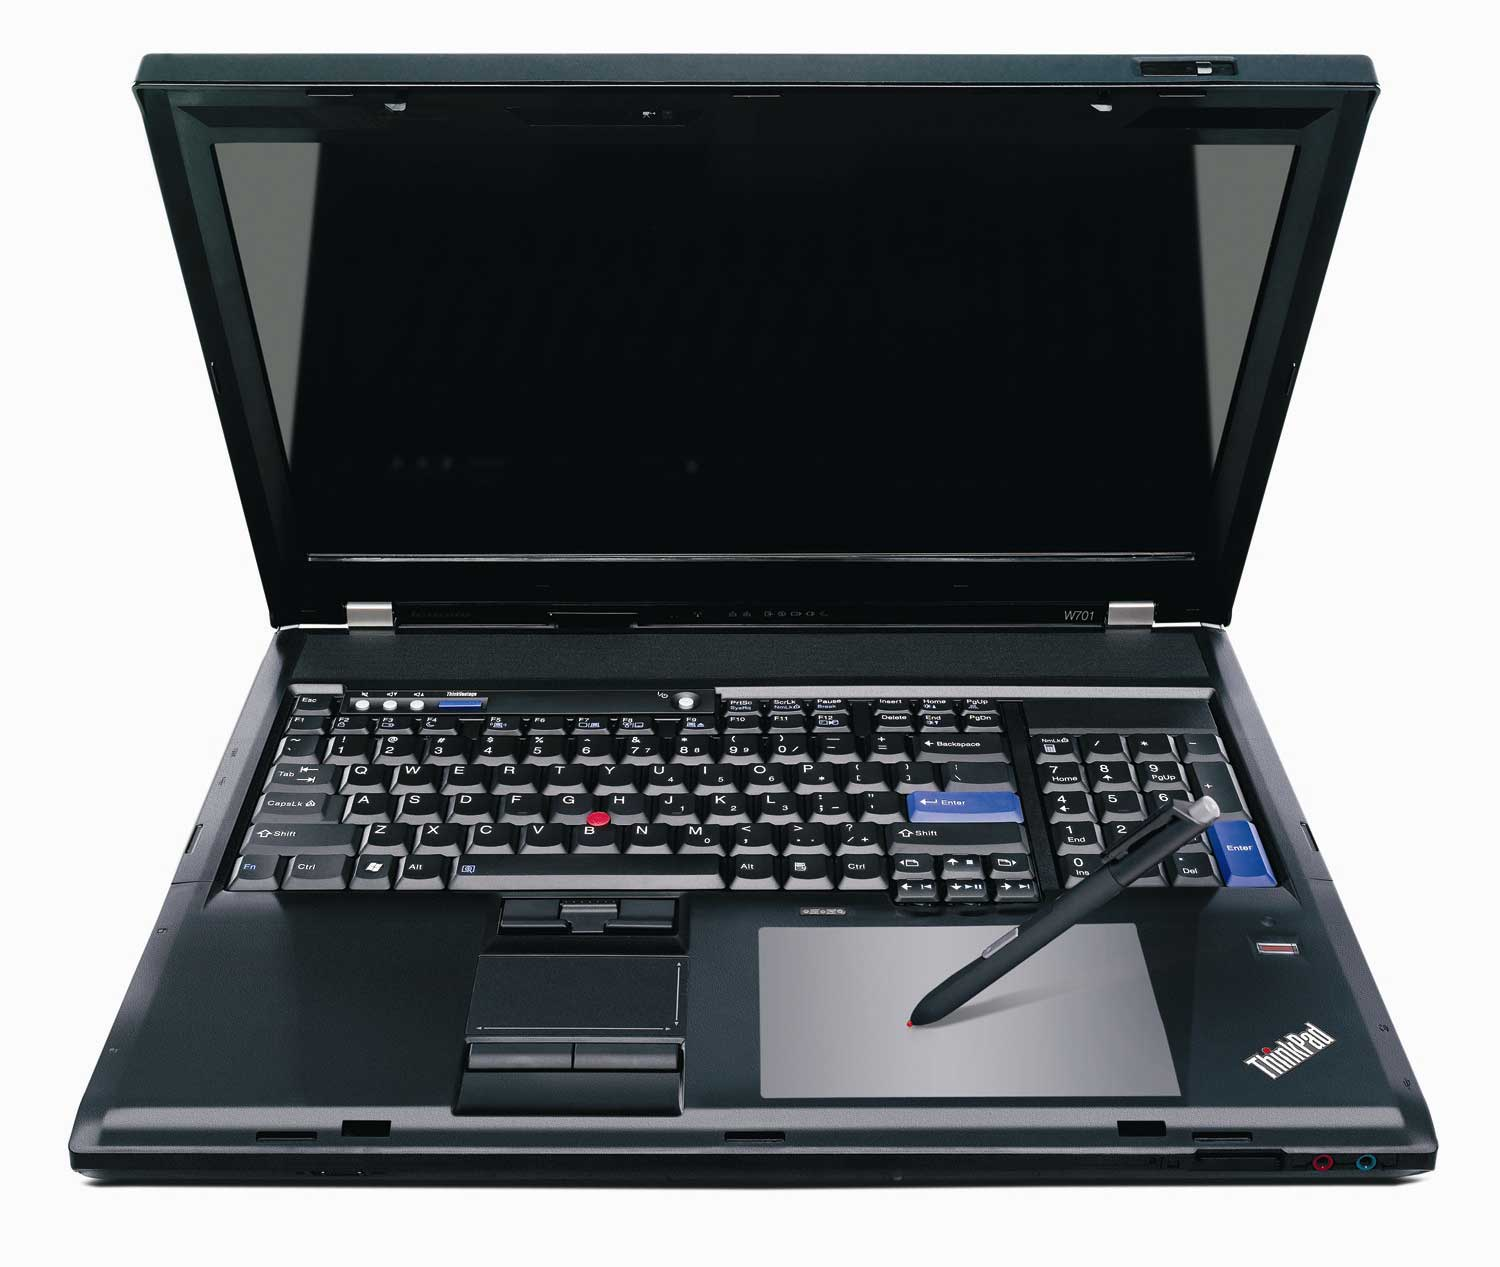 Lenovo Black ThinkPad W701 Workstation